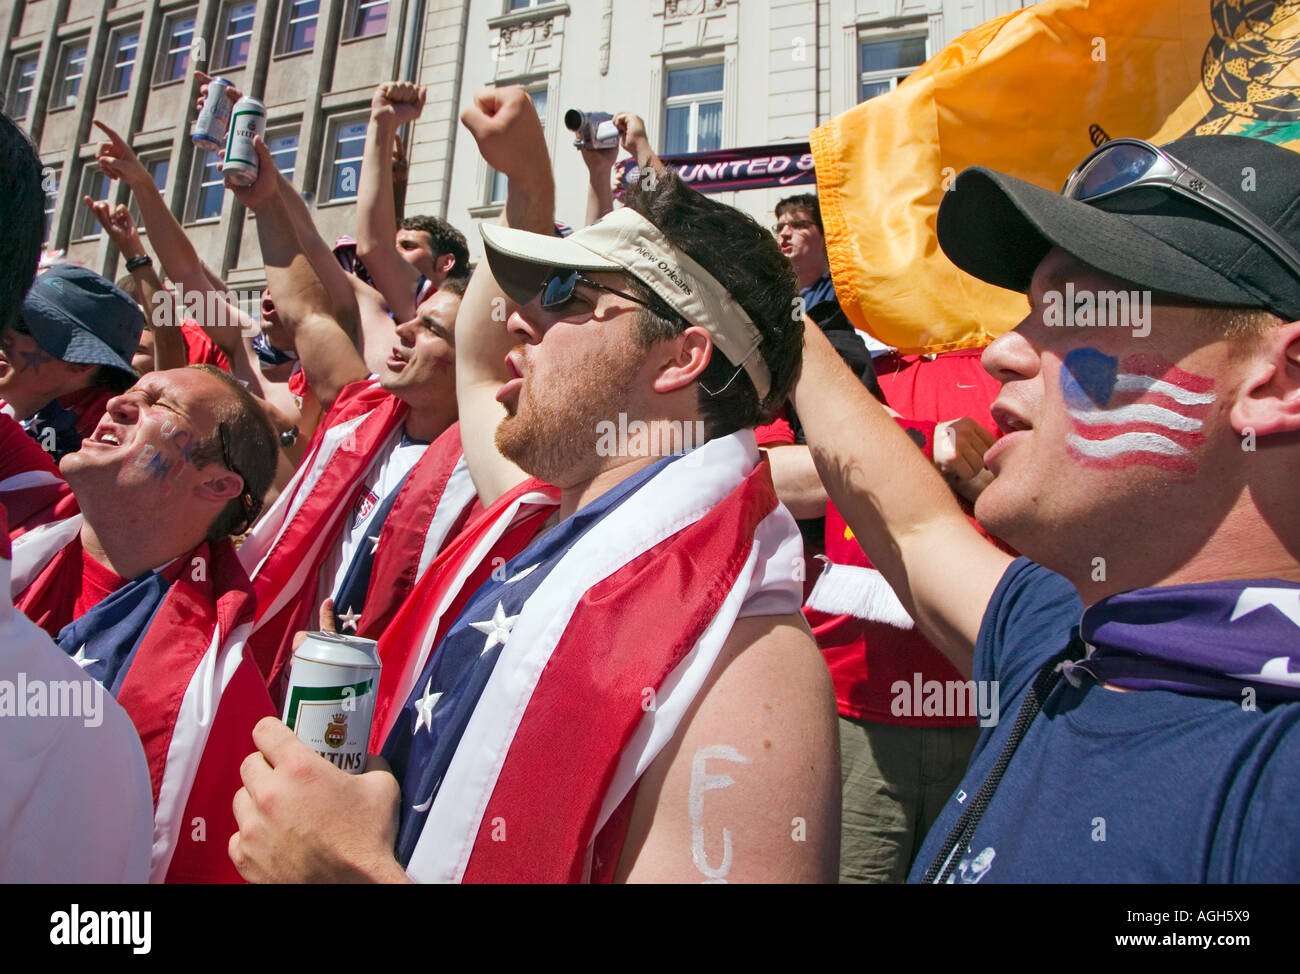 3b1604bd3 Us Fans Cheering Stock Photos & Us Fans Cheering Stock Images - Alamy